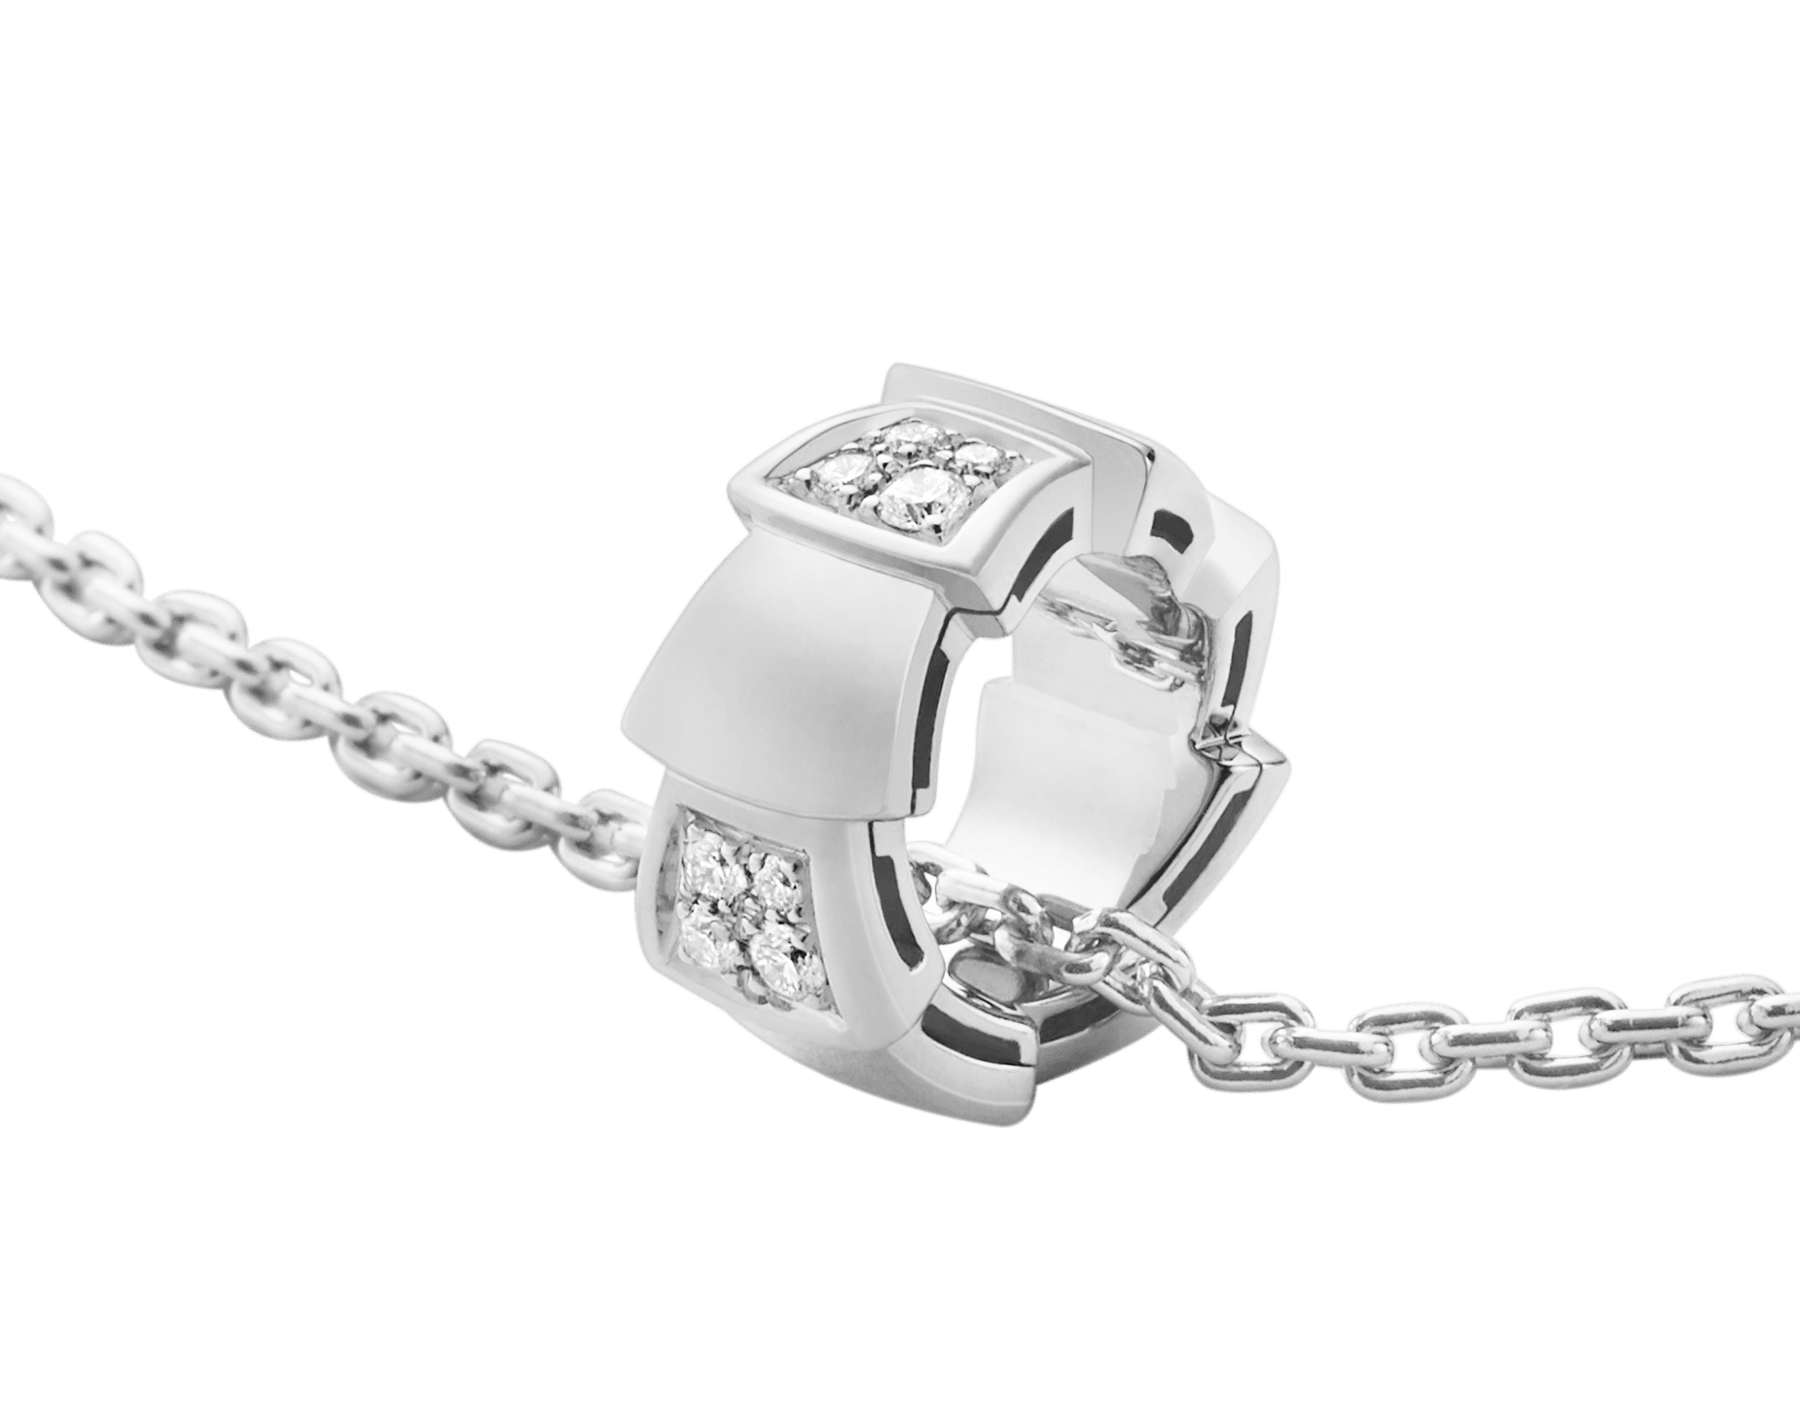 Serpenti Viper necklace with 18 kt white gold chain and 18 kt white gold pendant set with demi pavé diamonds.(0.21 ct) 355255 image 3